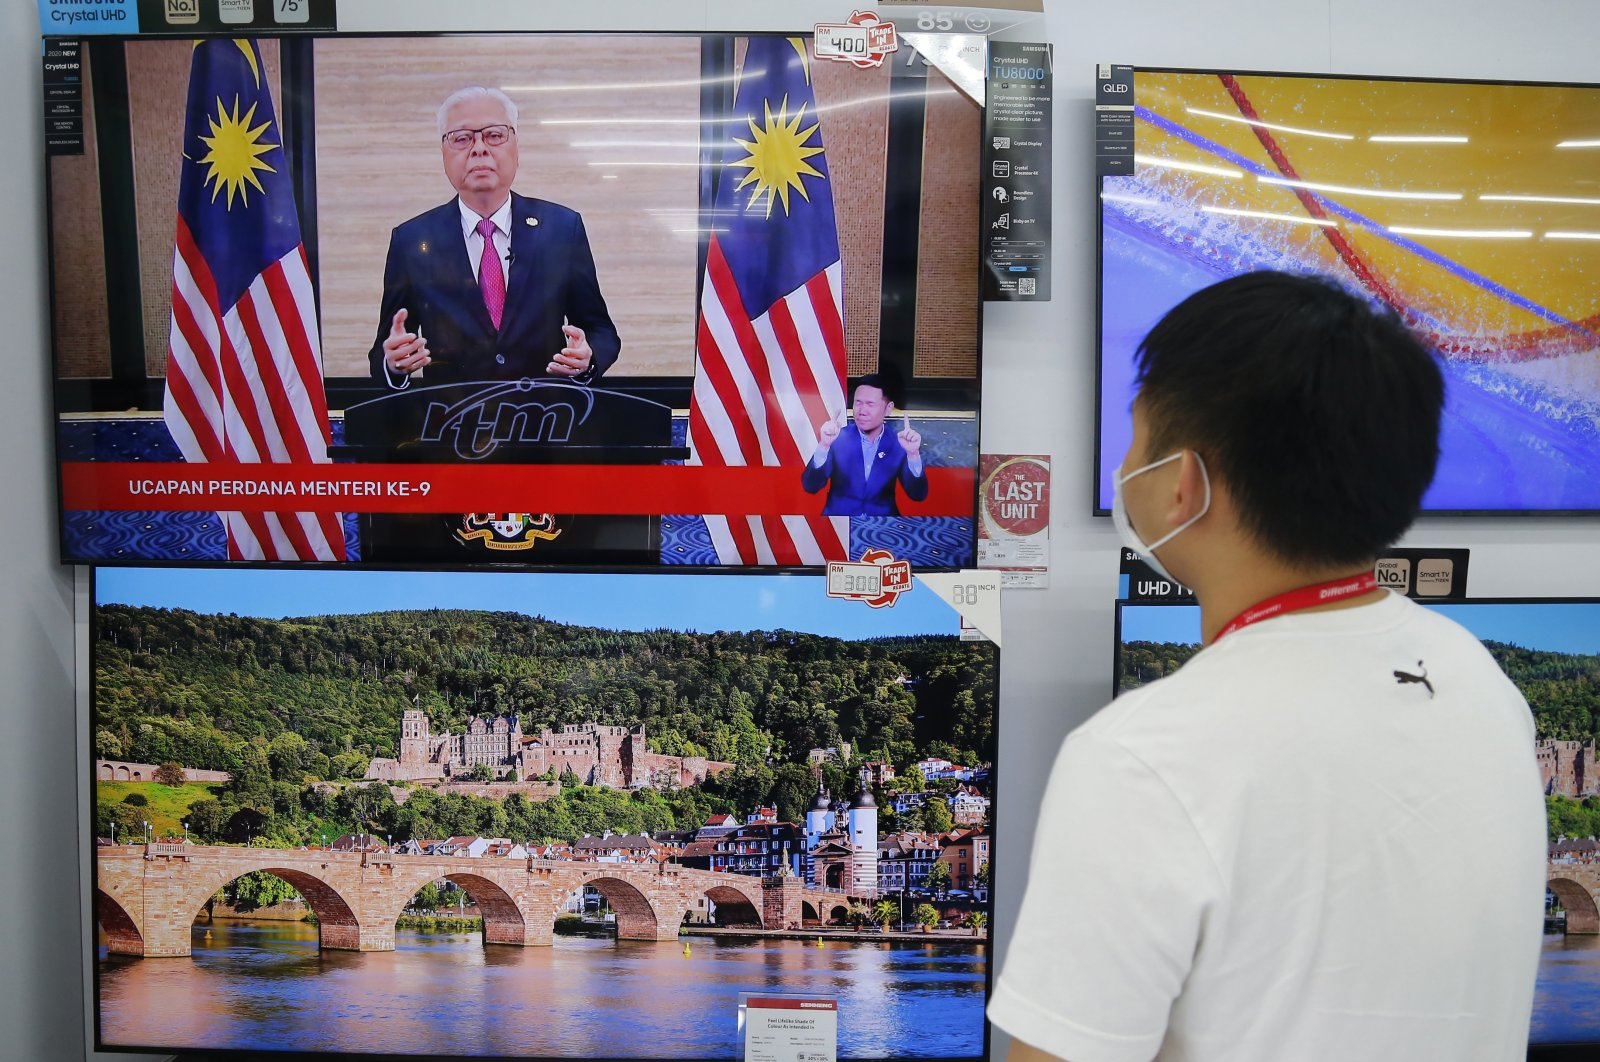 An electronic shop worker watches a speech by Malaysia's new Prime Minister Ismail Sabri Yaakob on television in Shah Alam, Malaysia, Aug. 22, 2021. (AP Photo)